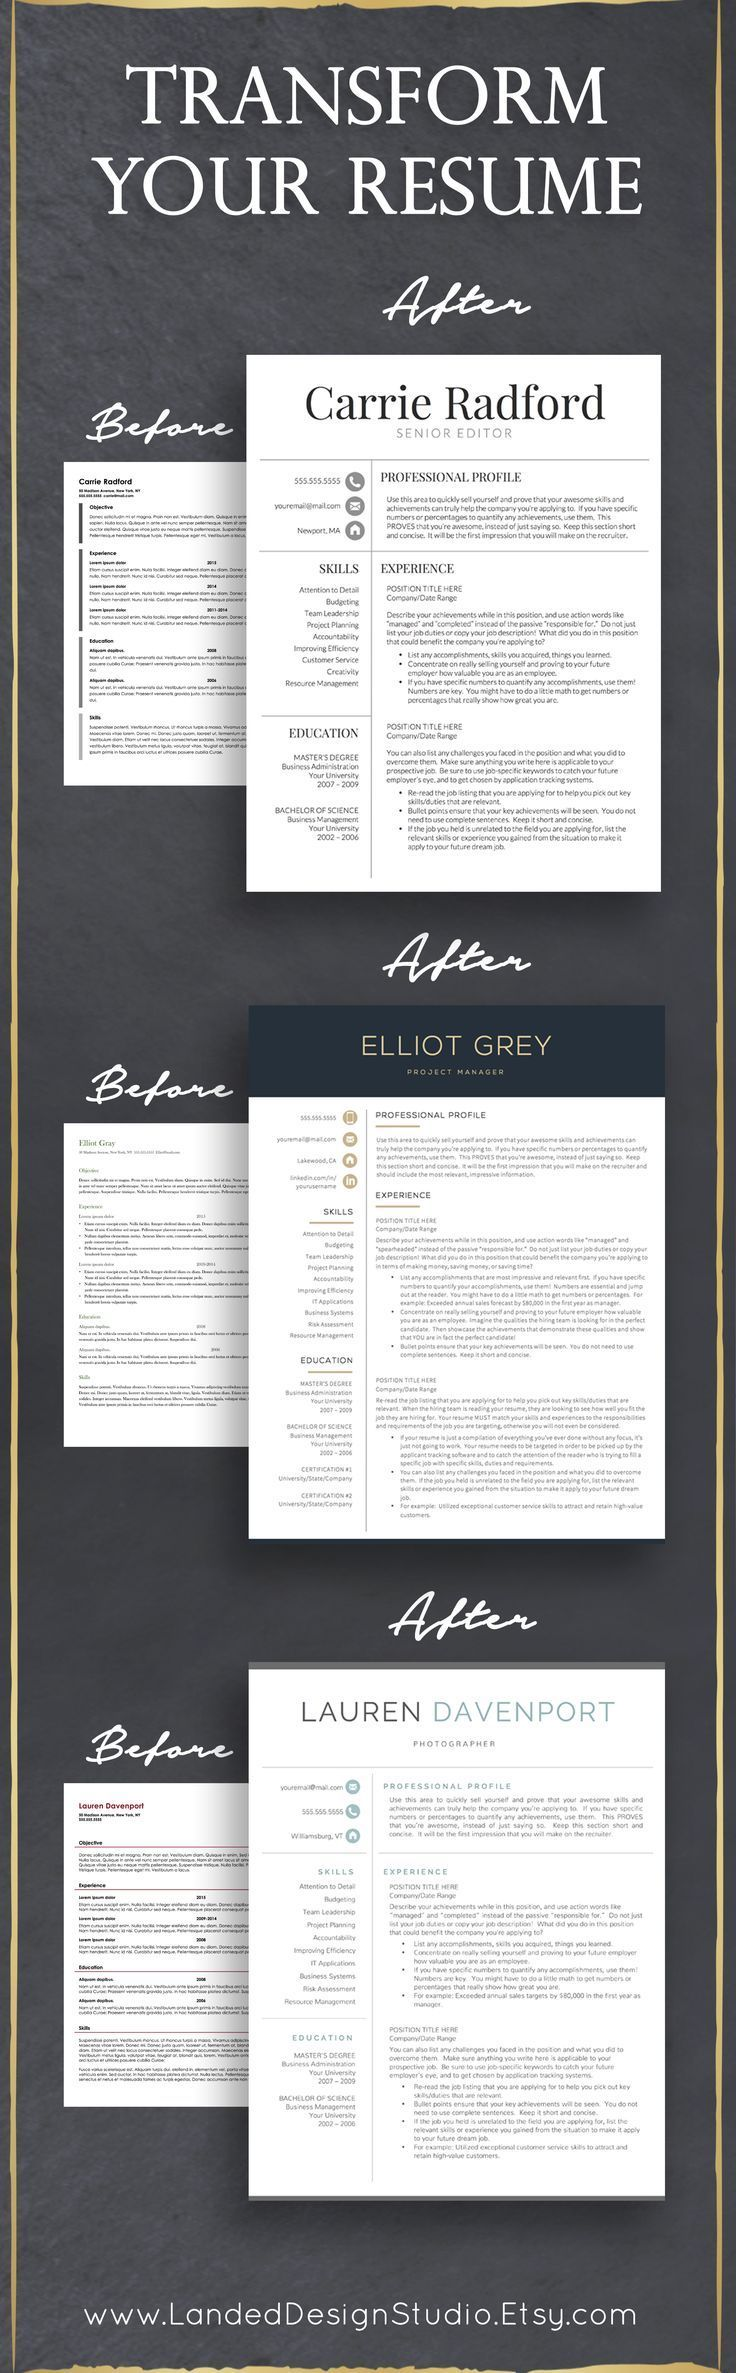 How To Start A Resume Writing Business 8 Best Resume Job Images On Pinterest  Resume Resume Tips And Gym